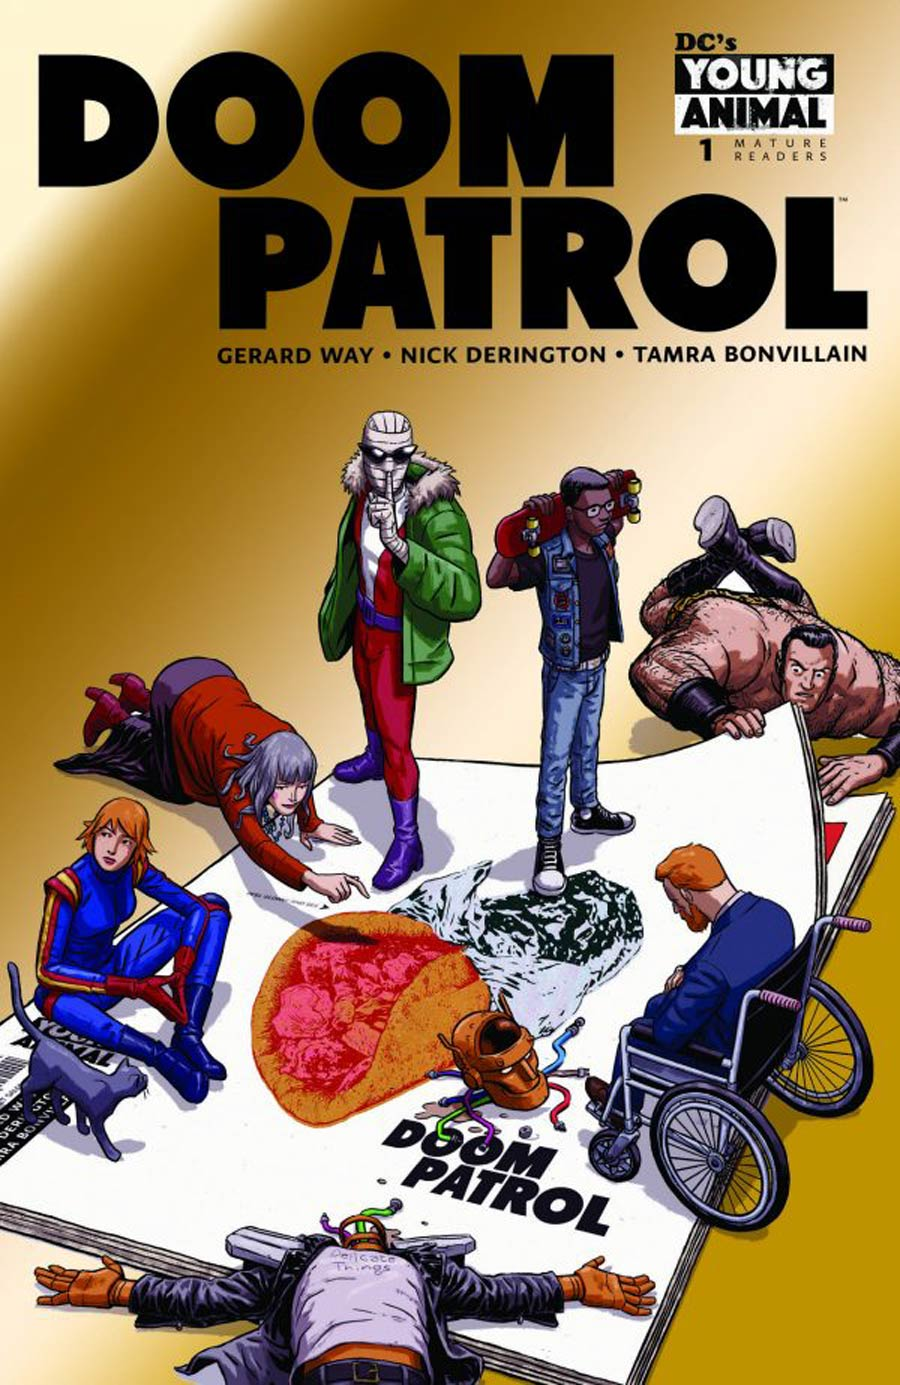 Doom Patrol Vol 6 #1 Cover G NYCC Exclusive Chrome Variant Cover